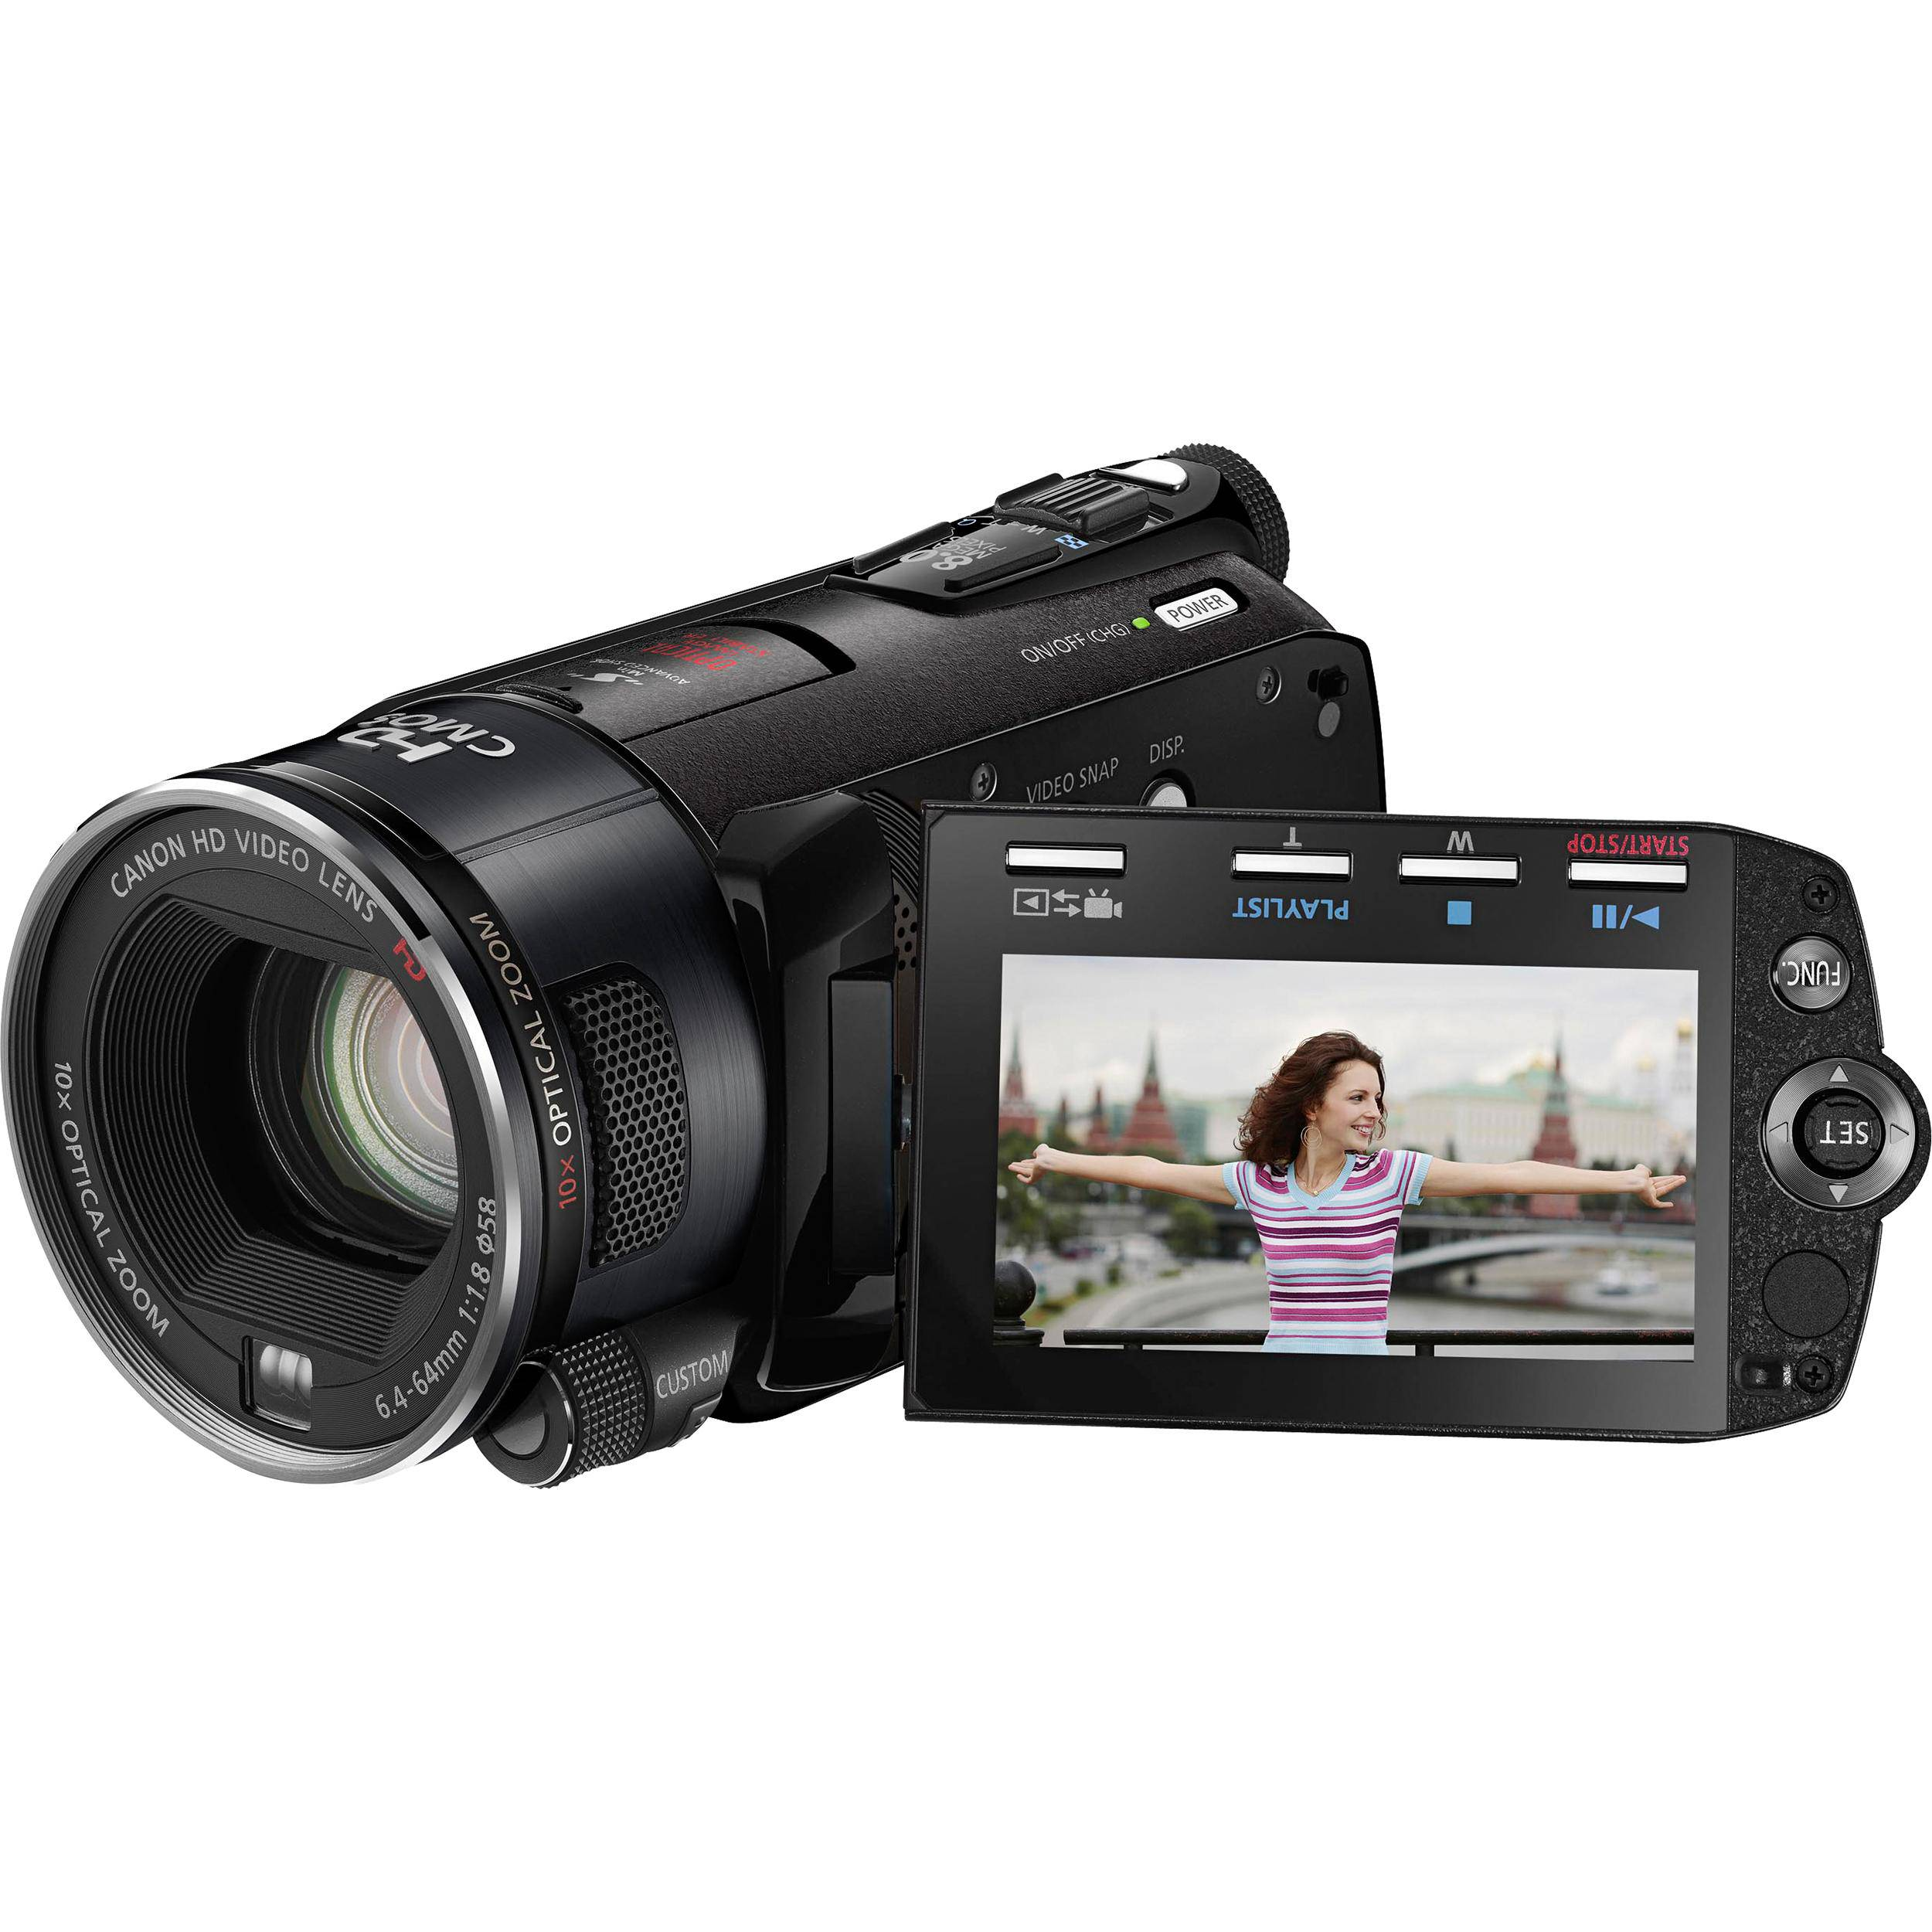 Canon Legria HF S10 Dual Flash Memory High Definition 'PAL' Camcorder